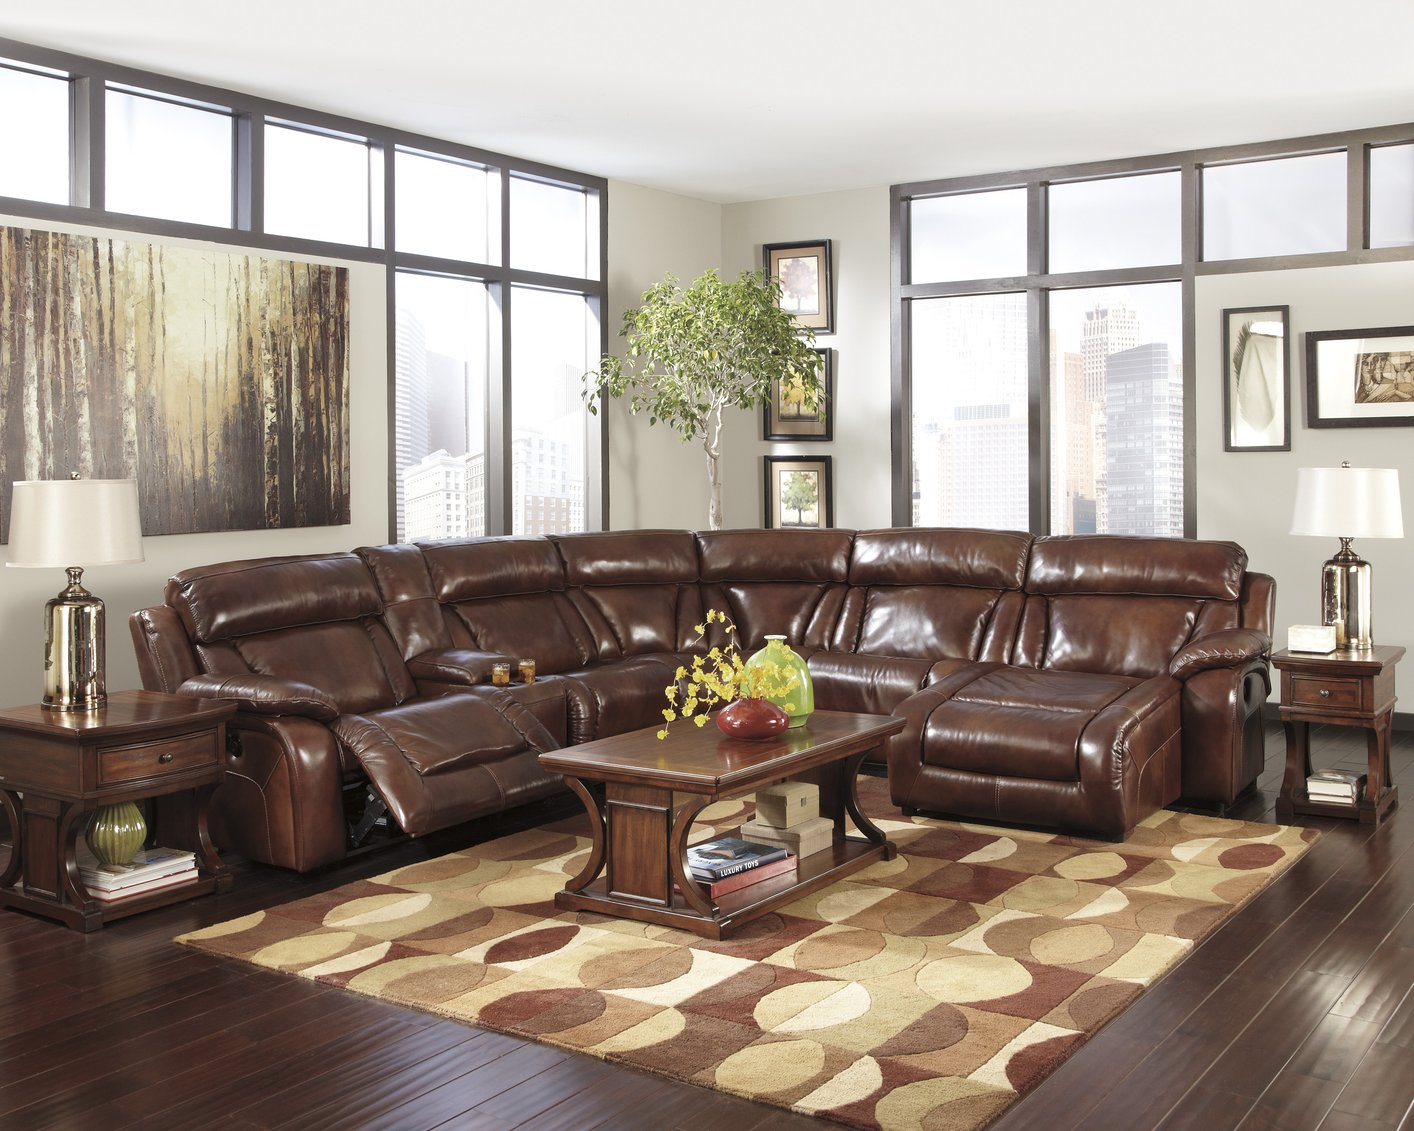 Brown Leather Sectional Sofa Clearance In Comfortable Design With Chaise In  One Side Together With Patterned